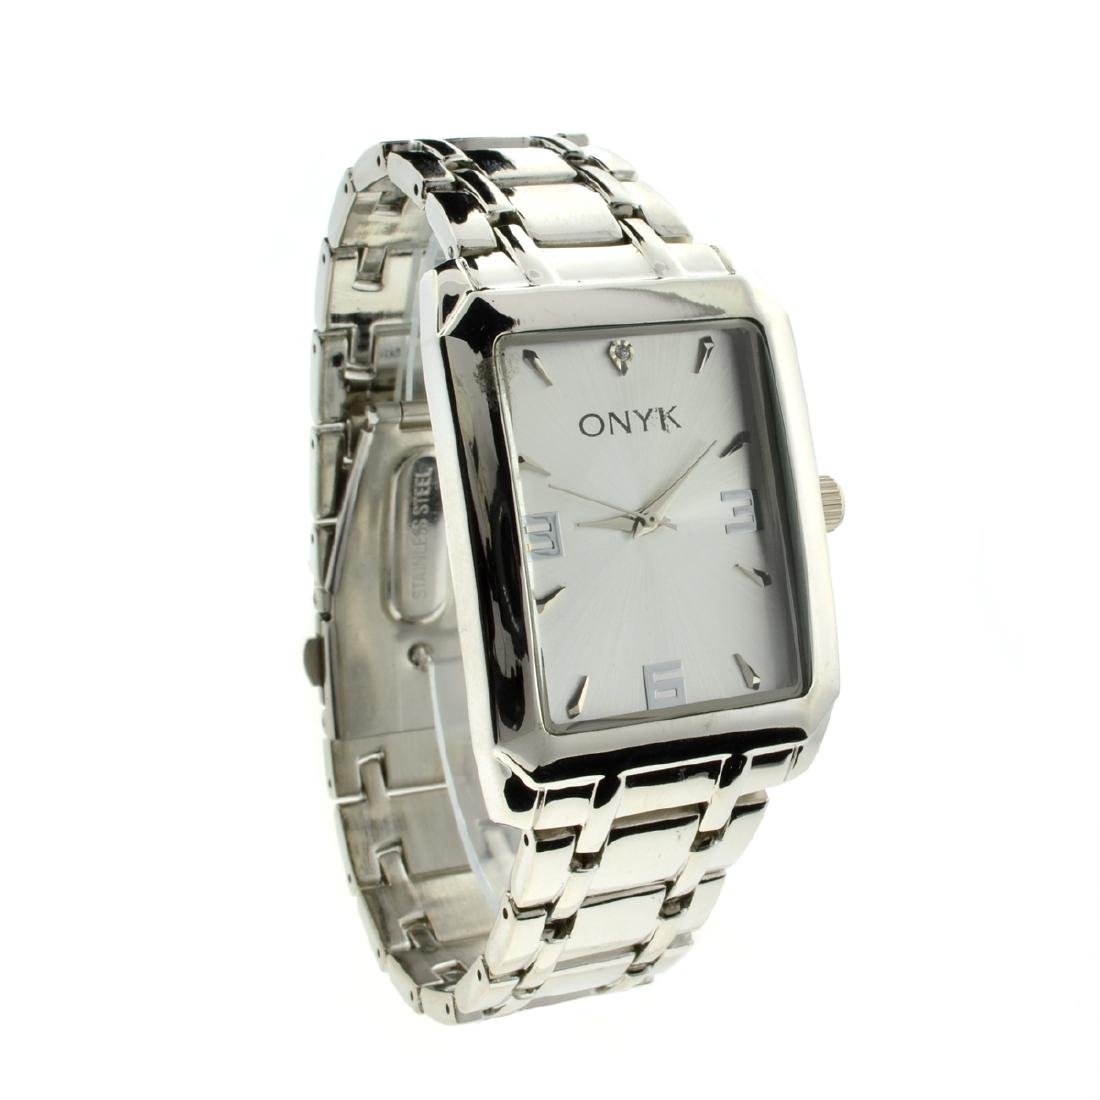 New Gorgeous Onyk Sainless Steel Back Water Resistant